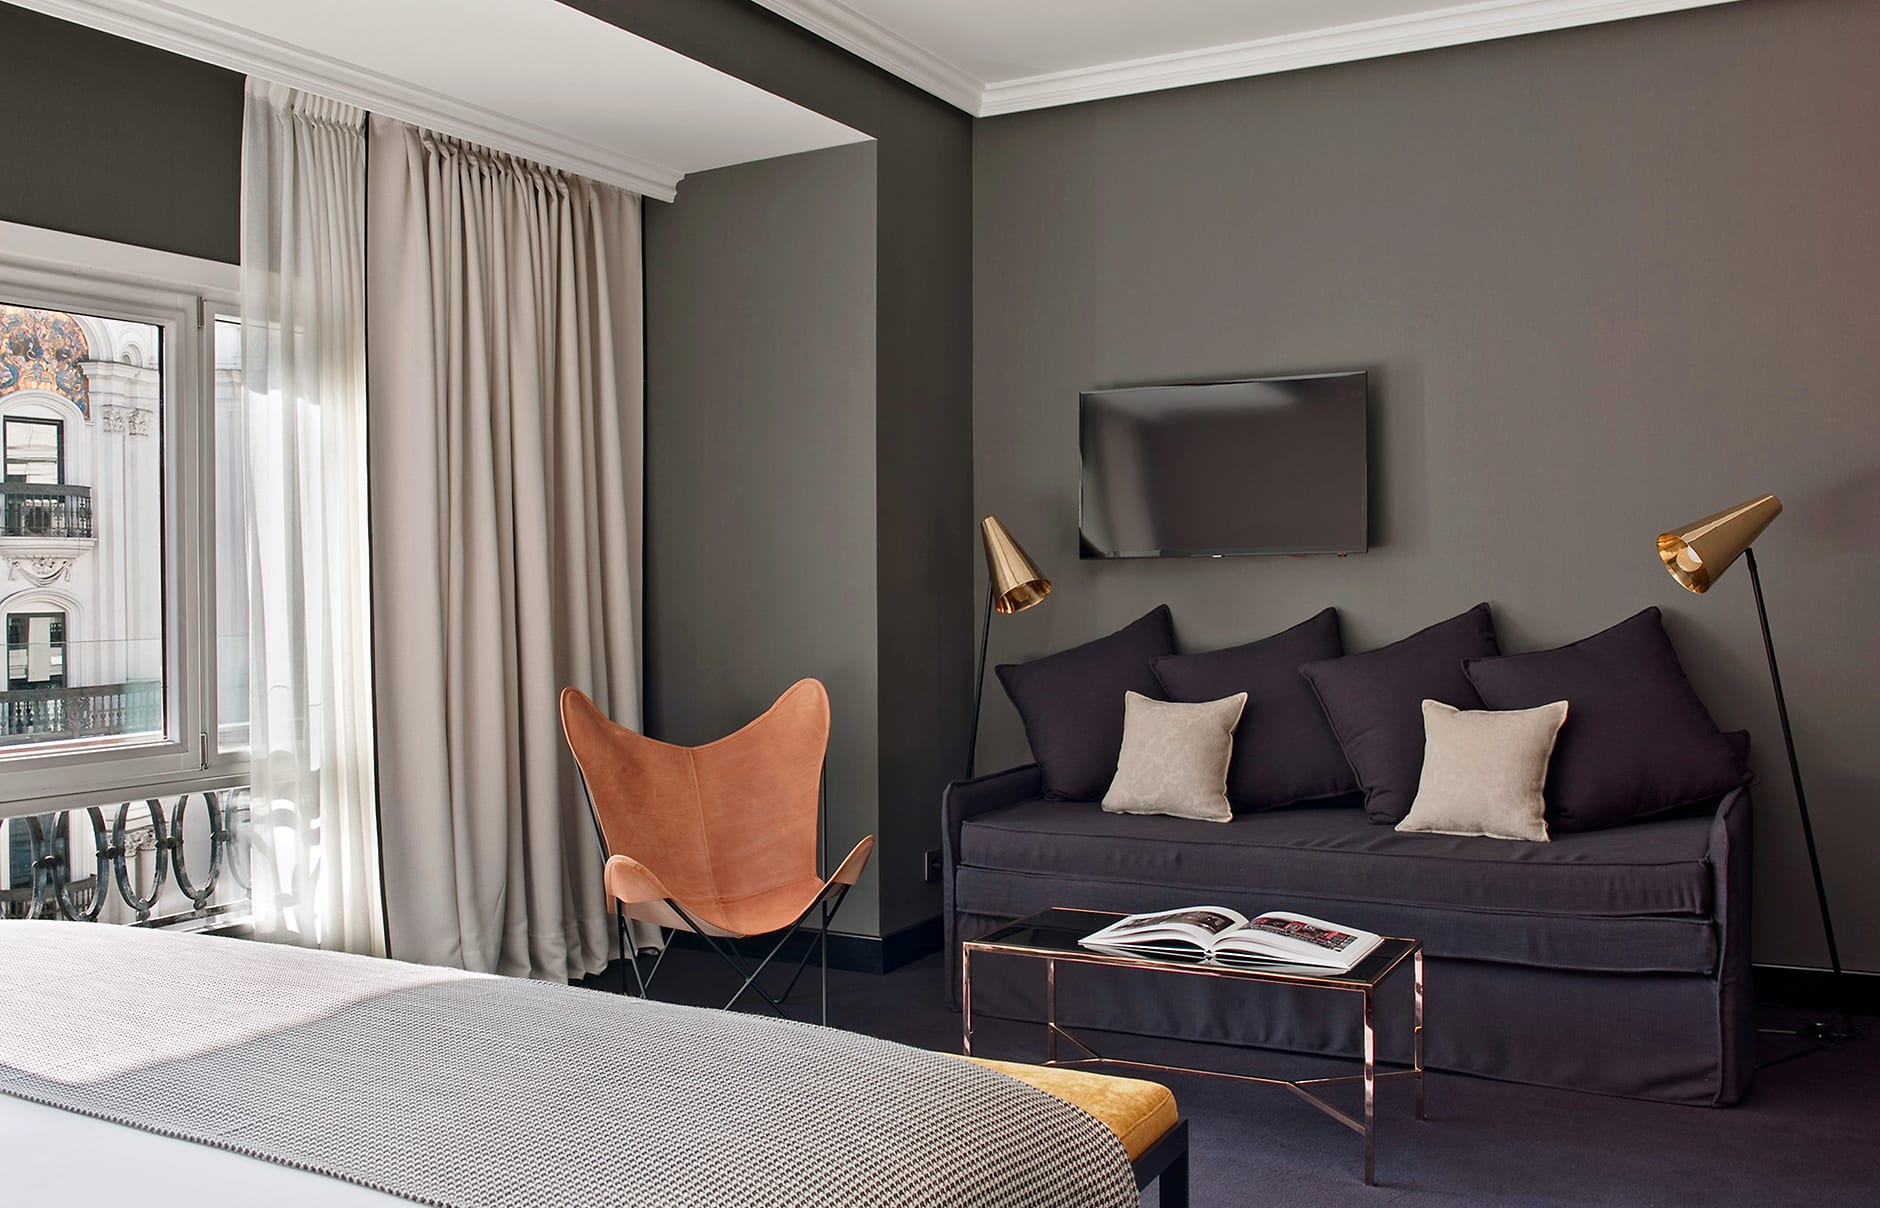 Junior Suite. The Principal Madrid, Spain. Hotel Review by TravelPlusStyle. Photo © The Principal Madrid